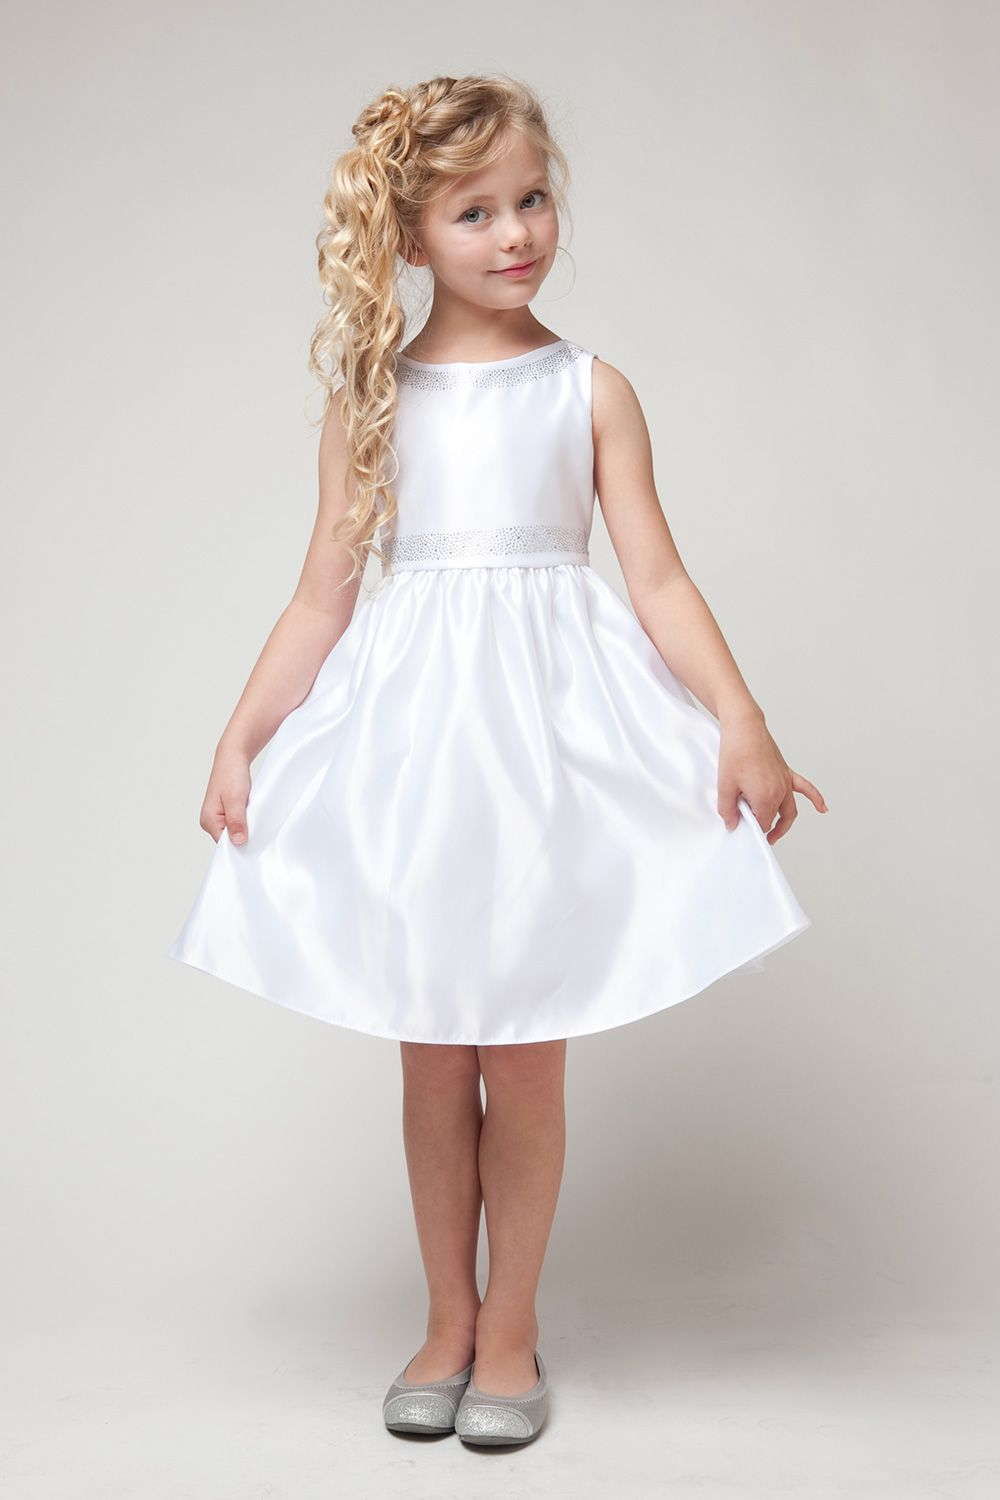 simple white dresses for girls - Dress Yp